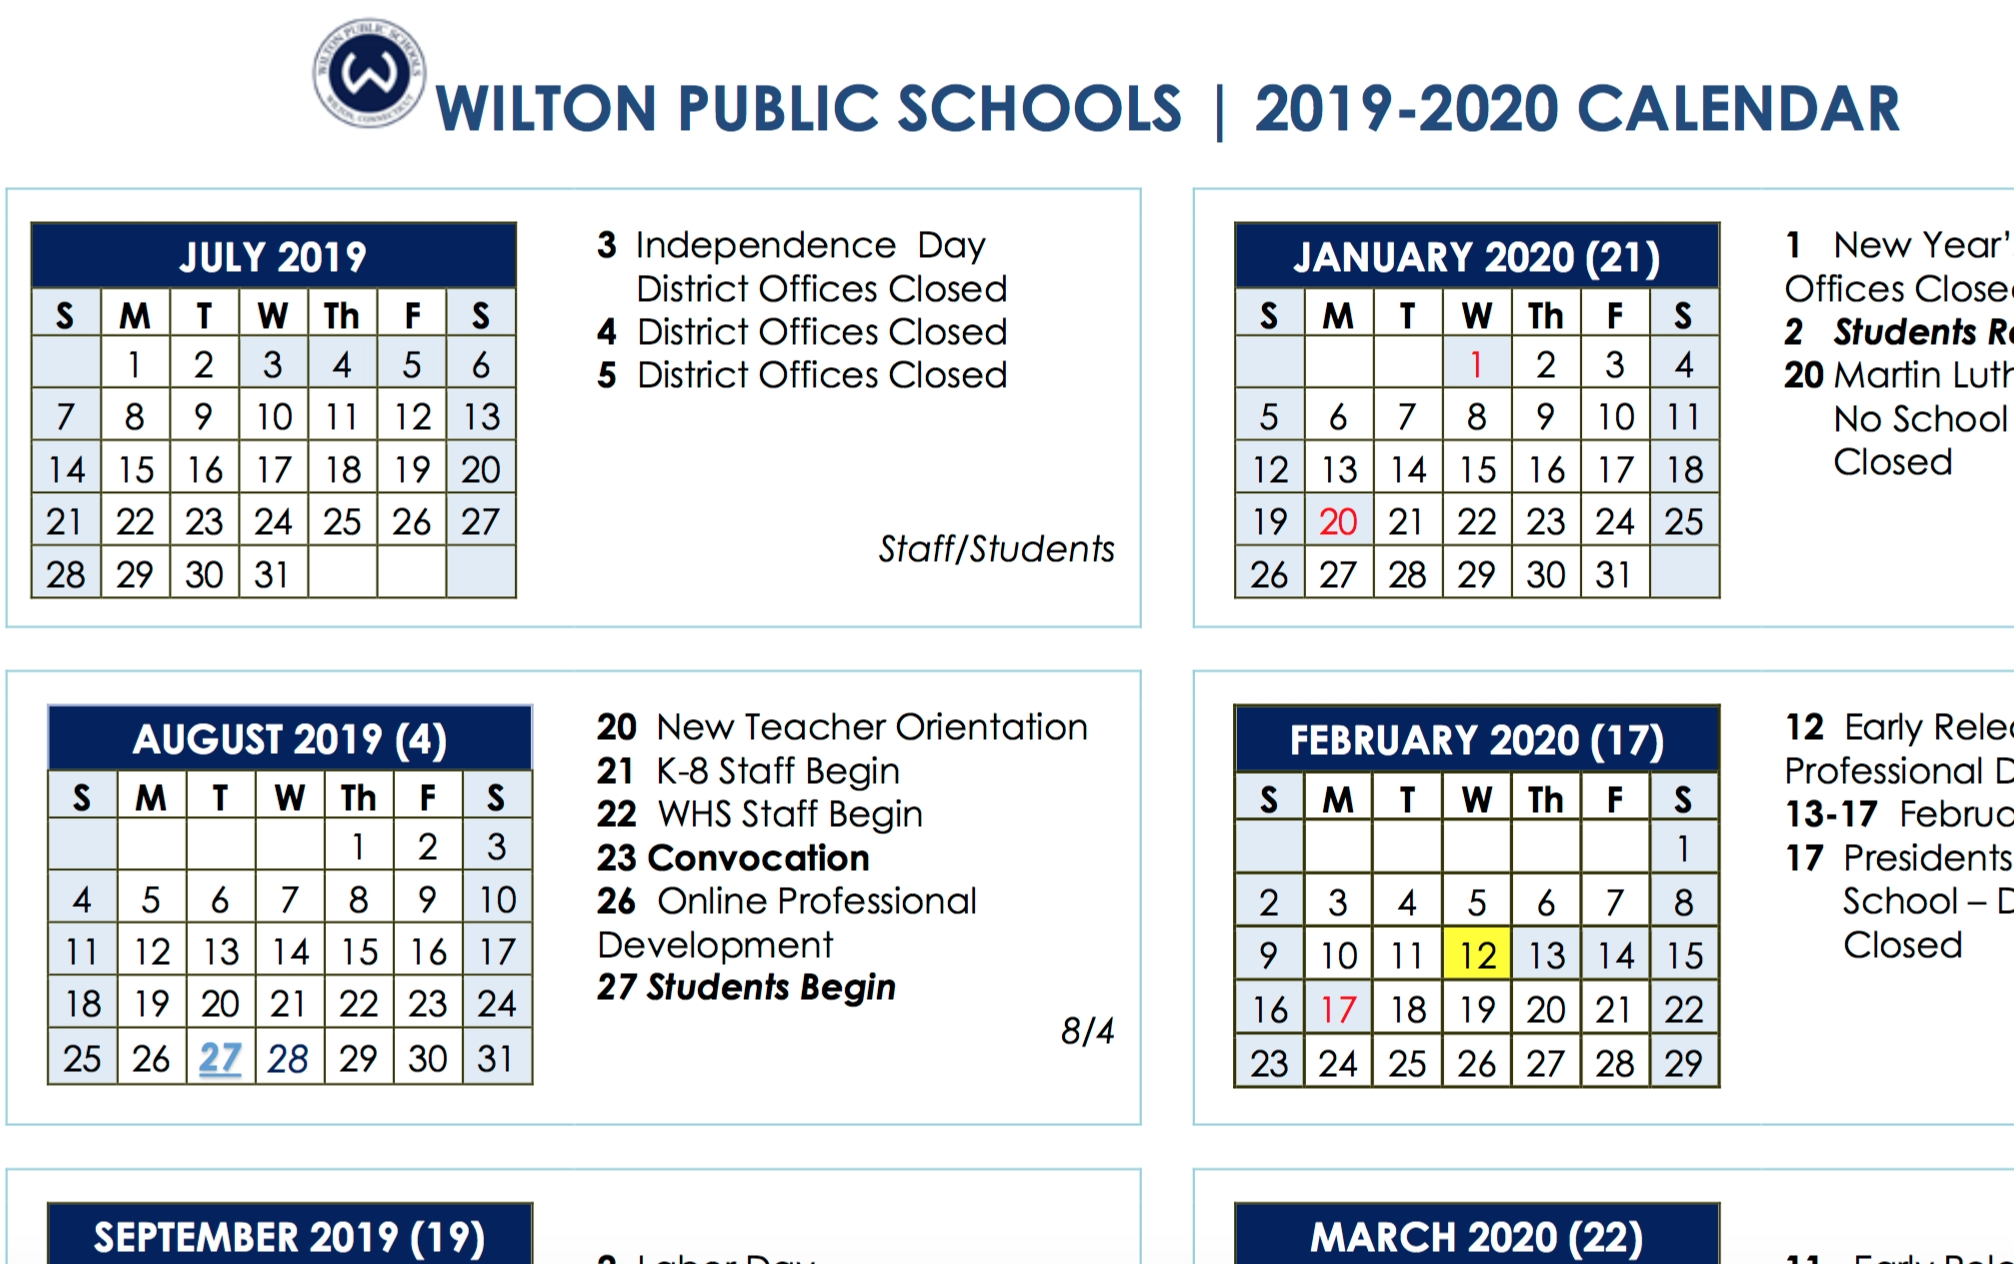 Board Of Education Approves 2019-2020 And 2020-2021 School Year_School Calendar Bridgeport Ct